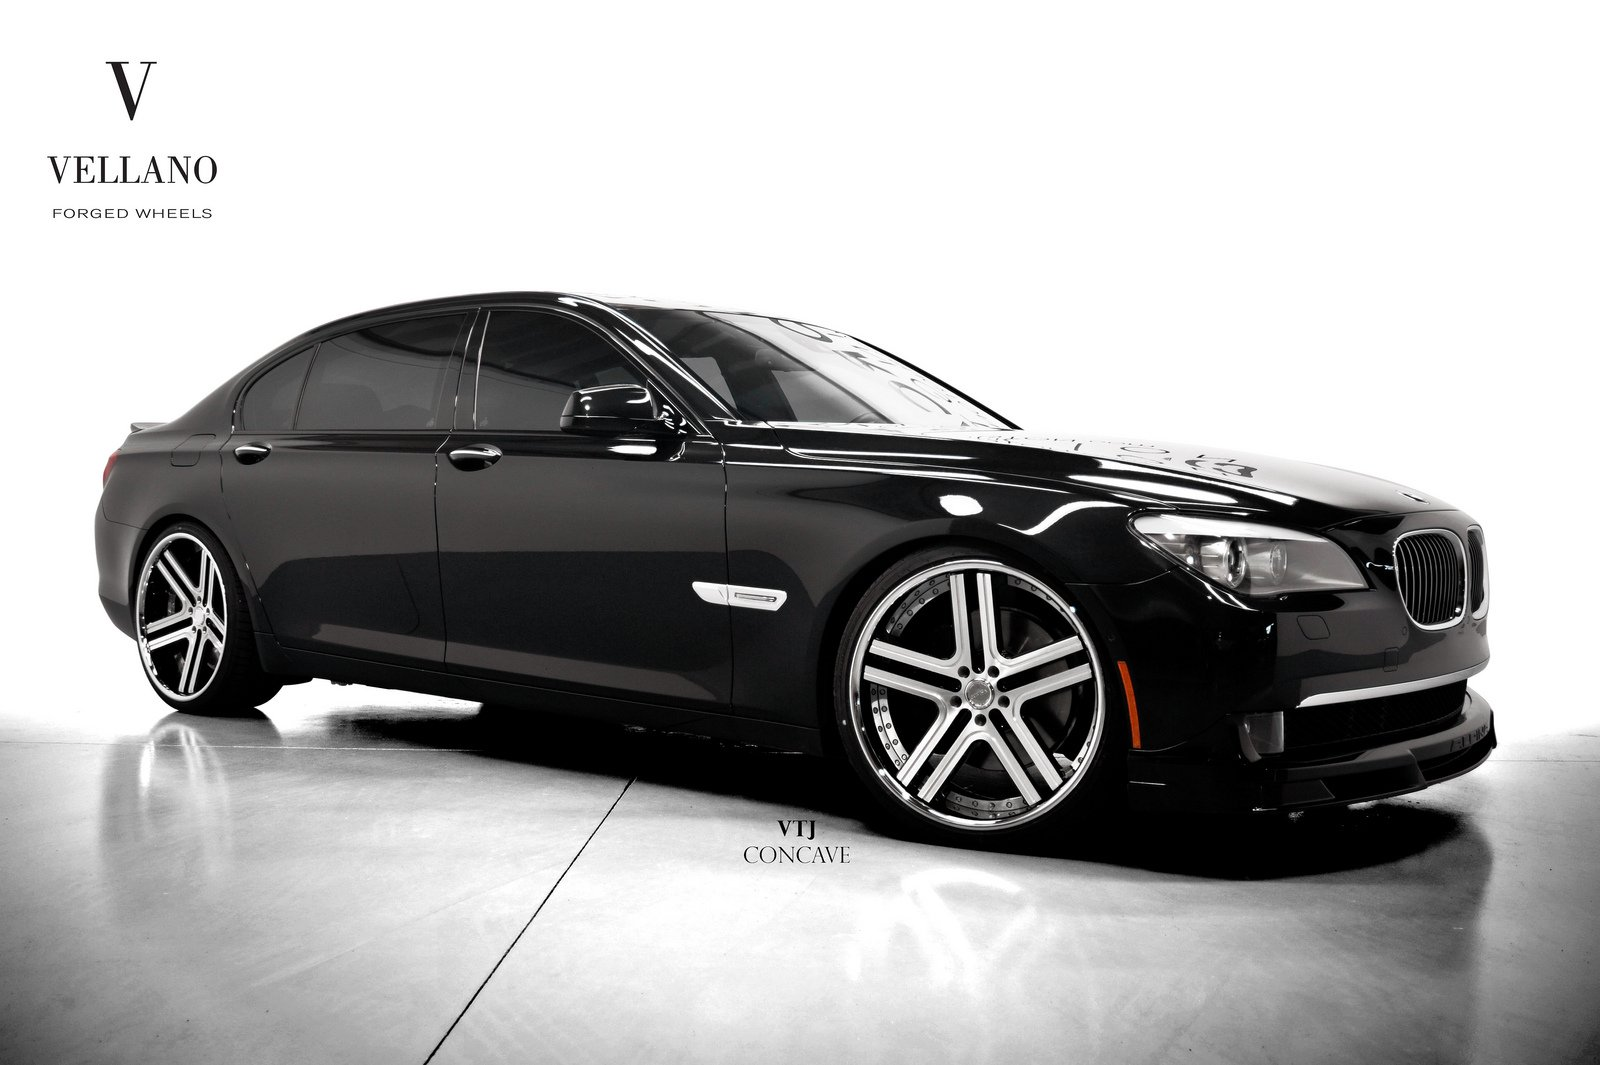 Since 1975, bmw has been running its unique art ca. Bmw 7 Series Black Vellano Wheels Tuning Cars Wallpaper Wallpapers Book Your 1 Source For Free Download Hd 4k High Quality Wallpapers